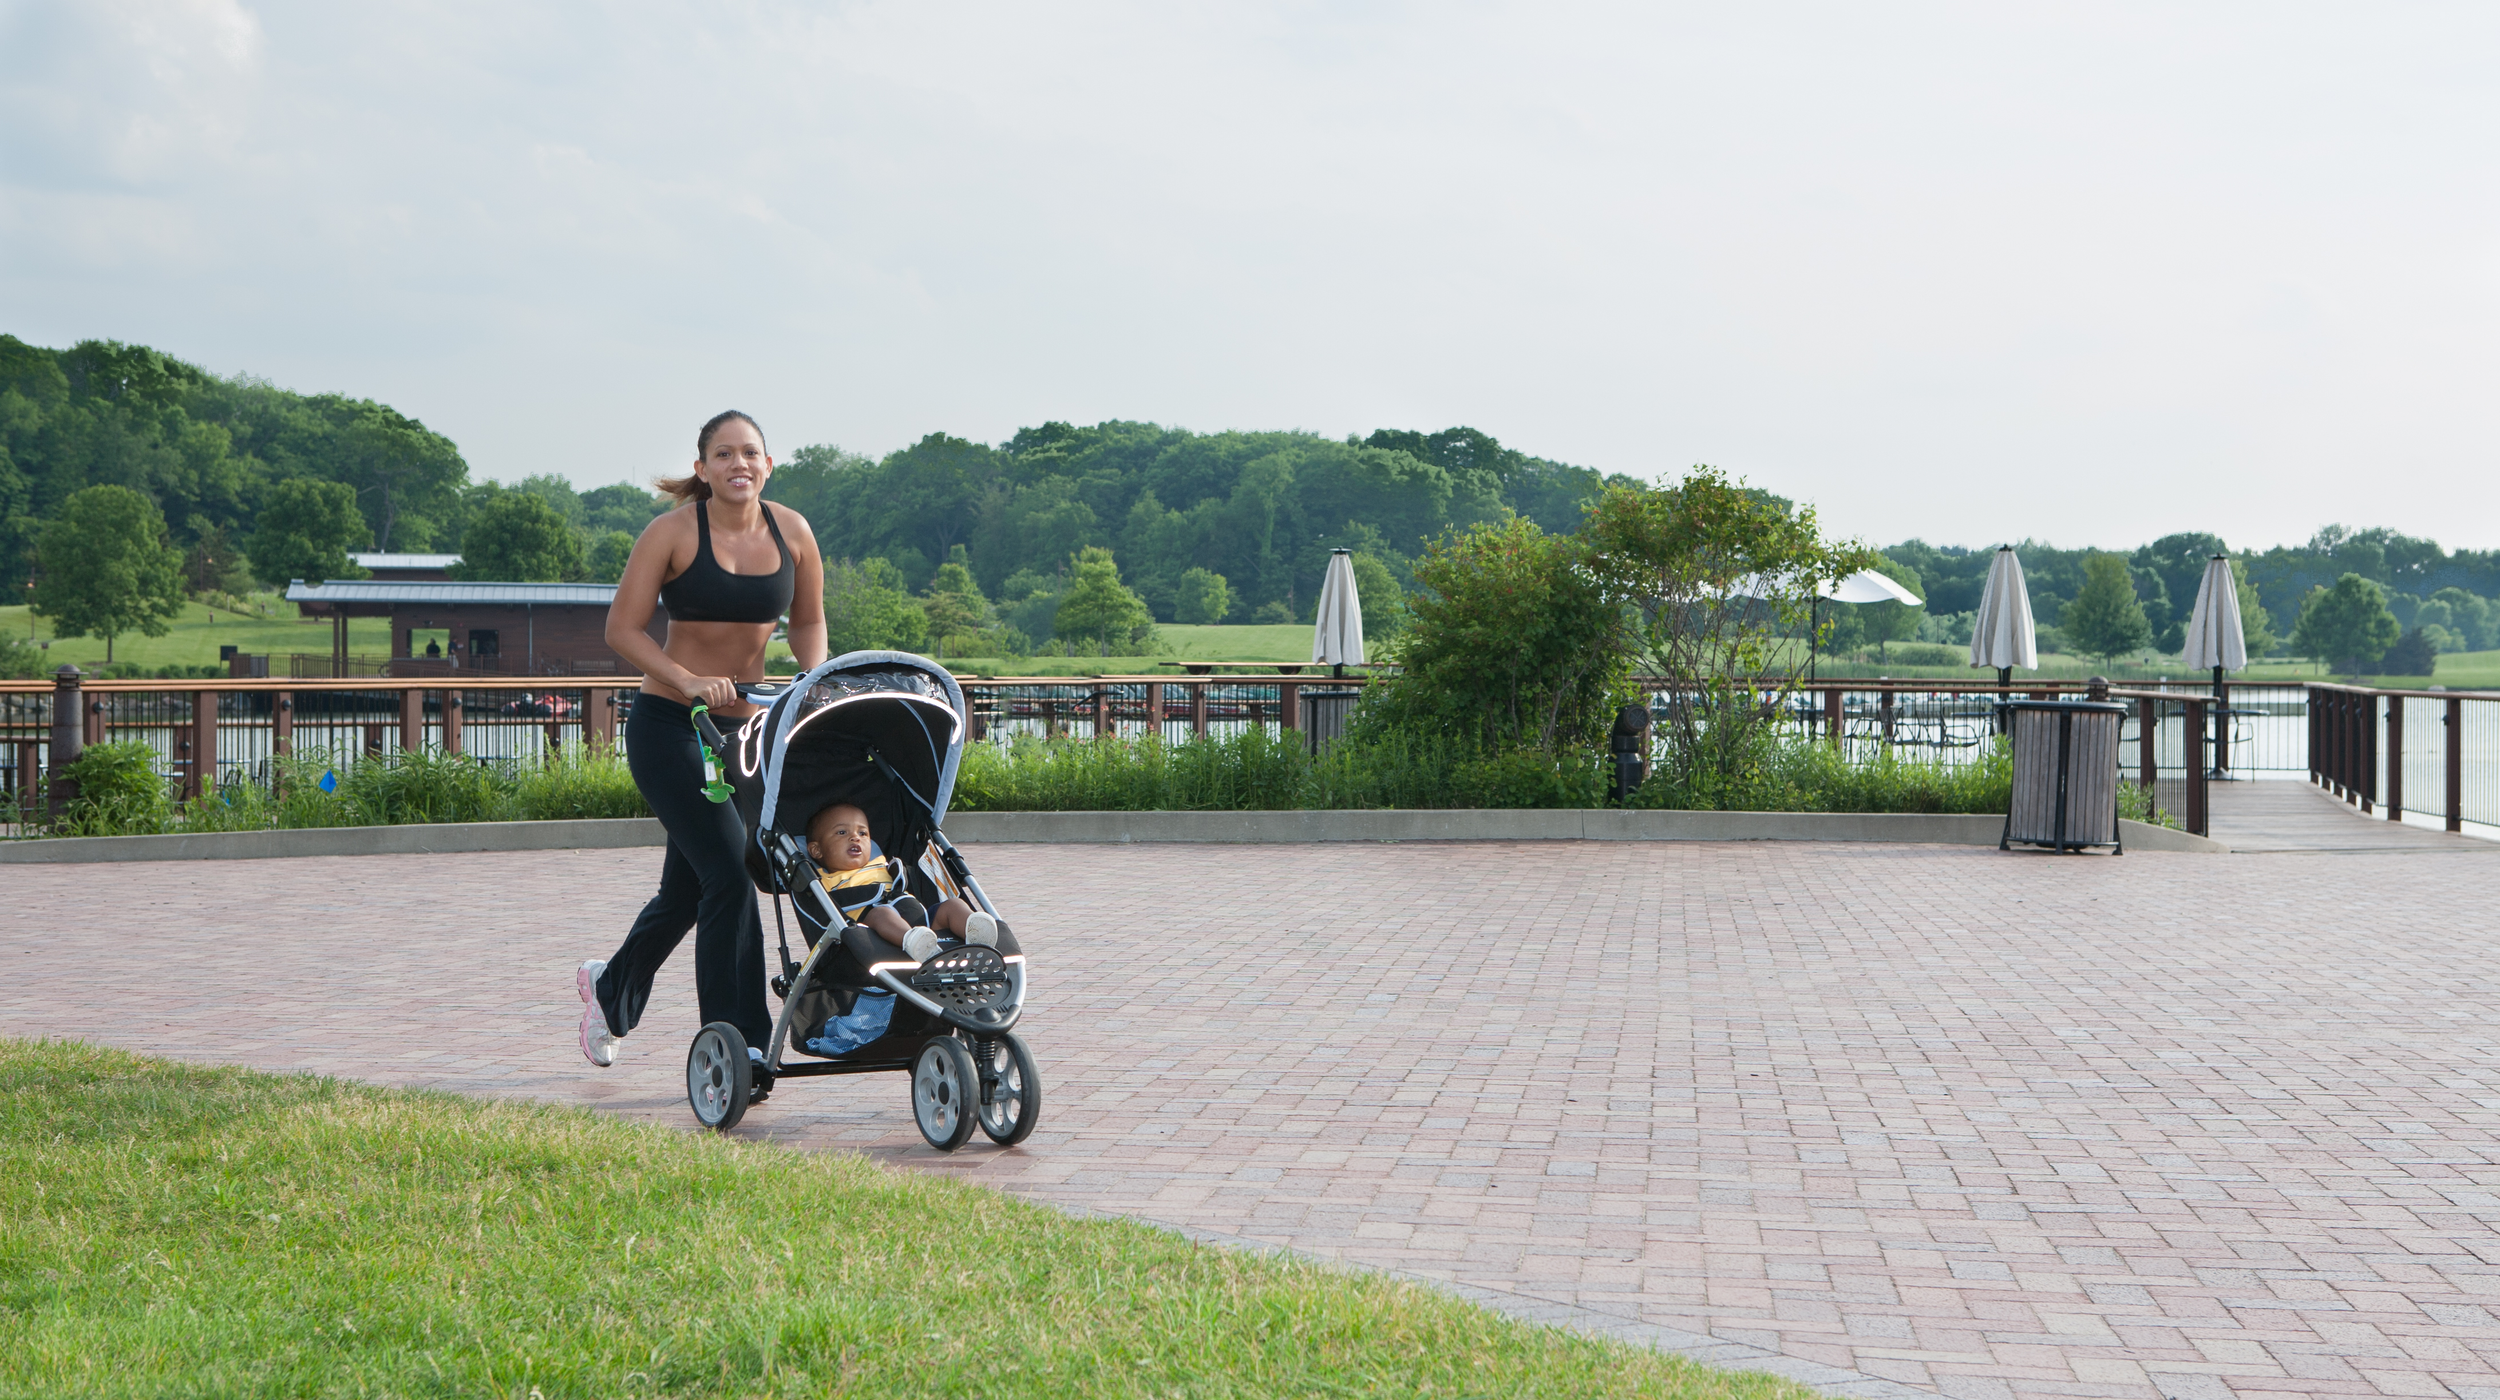 Should I Do Cardio if I Want to Lose Weight after Having a Baby?